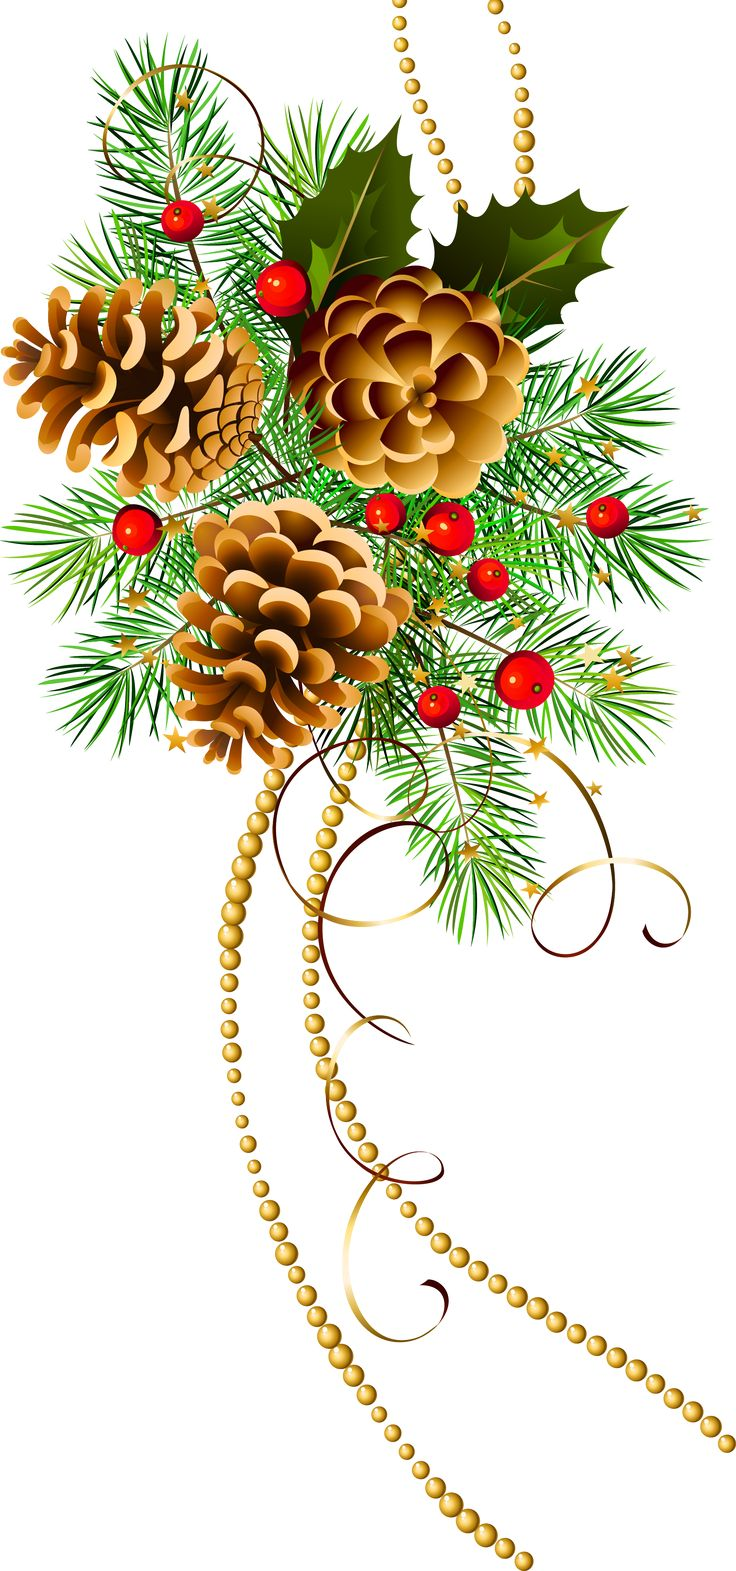 Pine and pine cones Christmas clip art large Vánoce